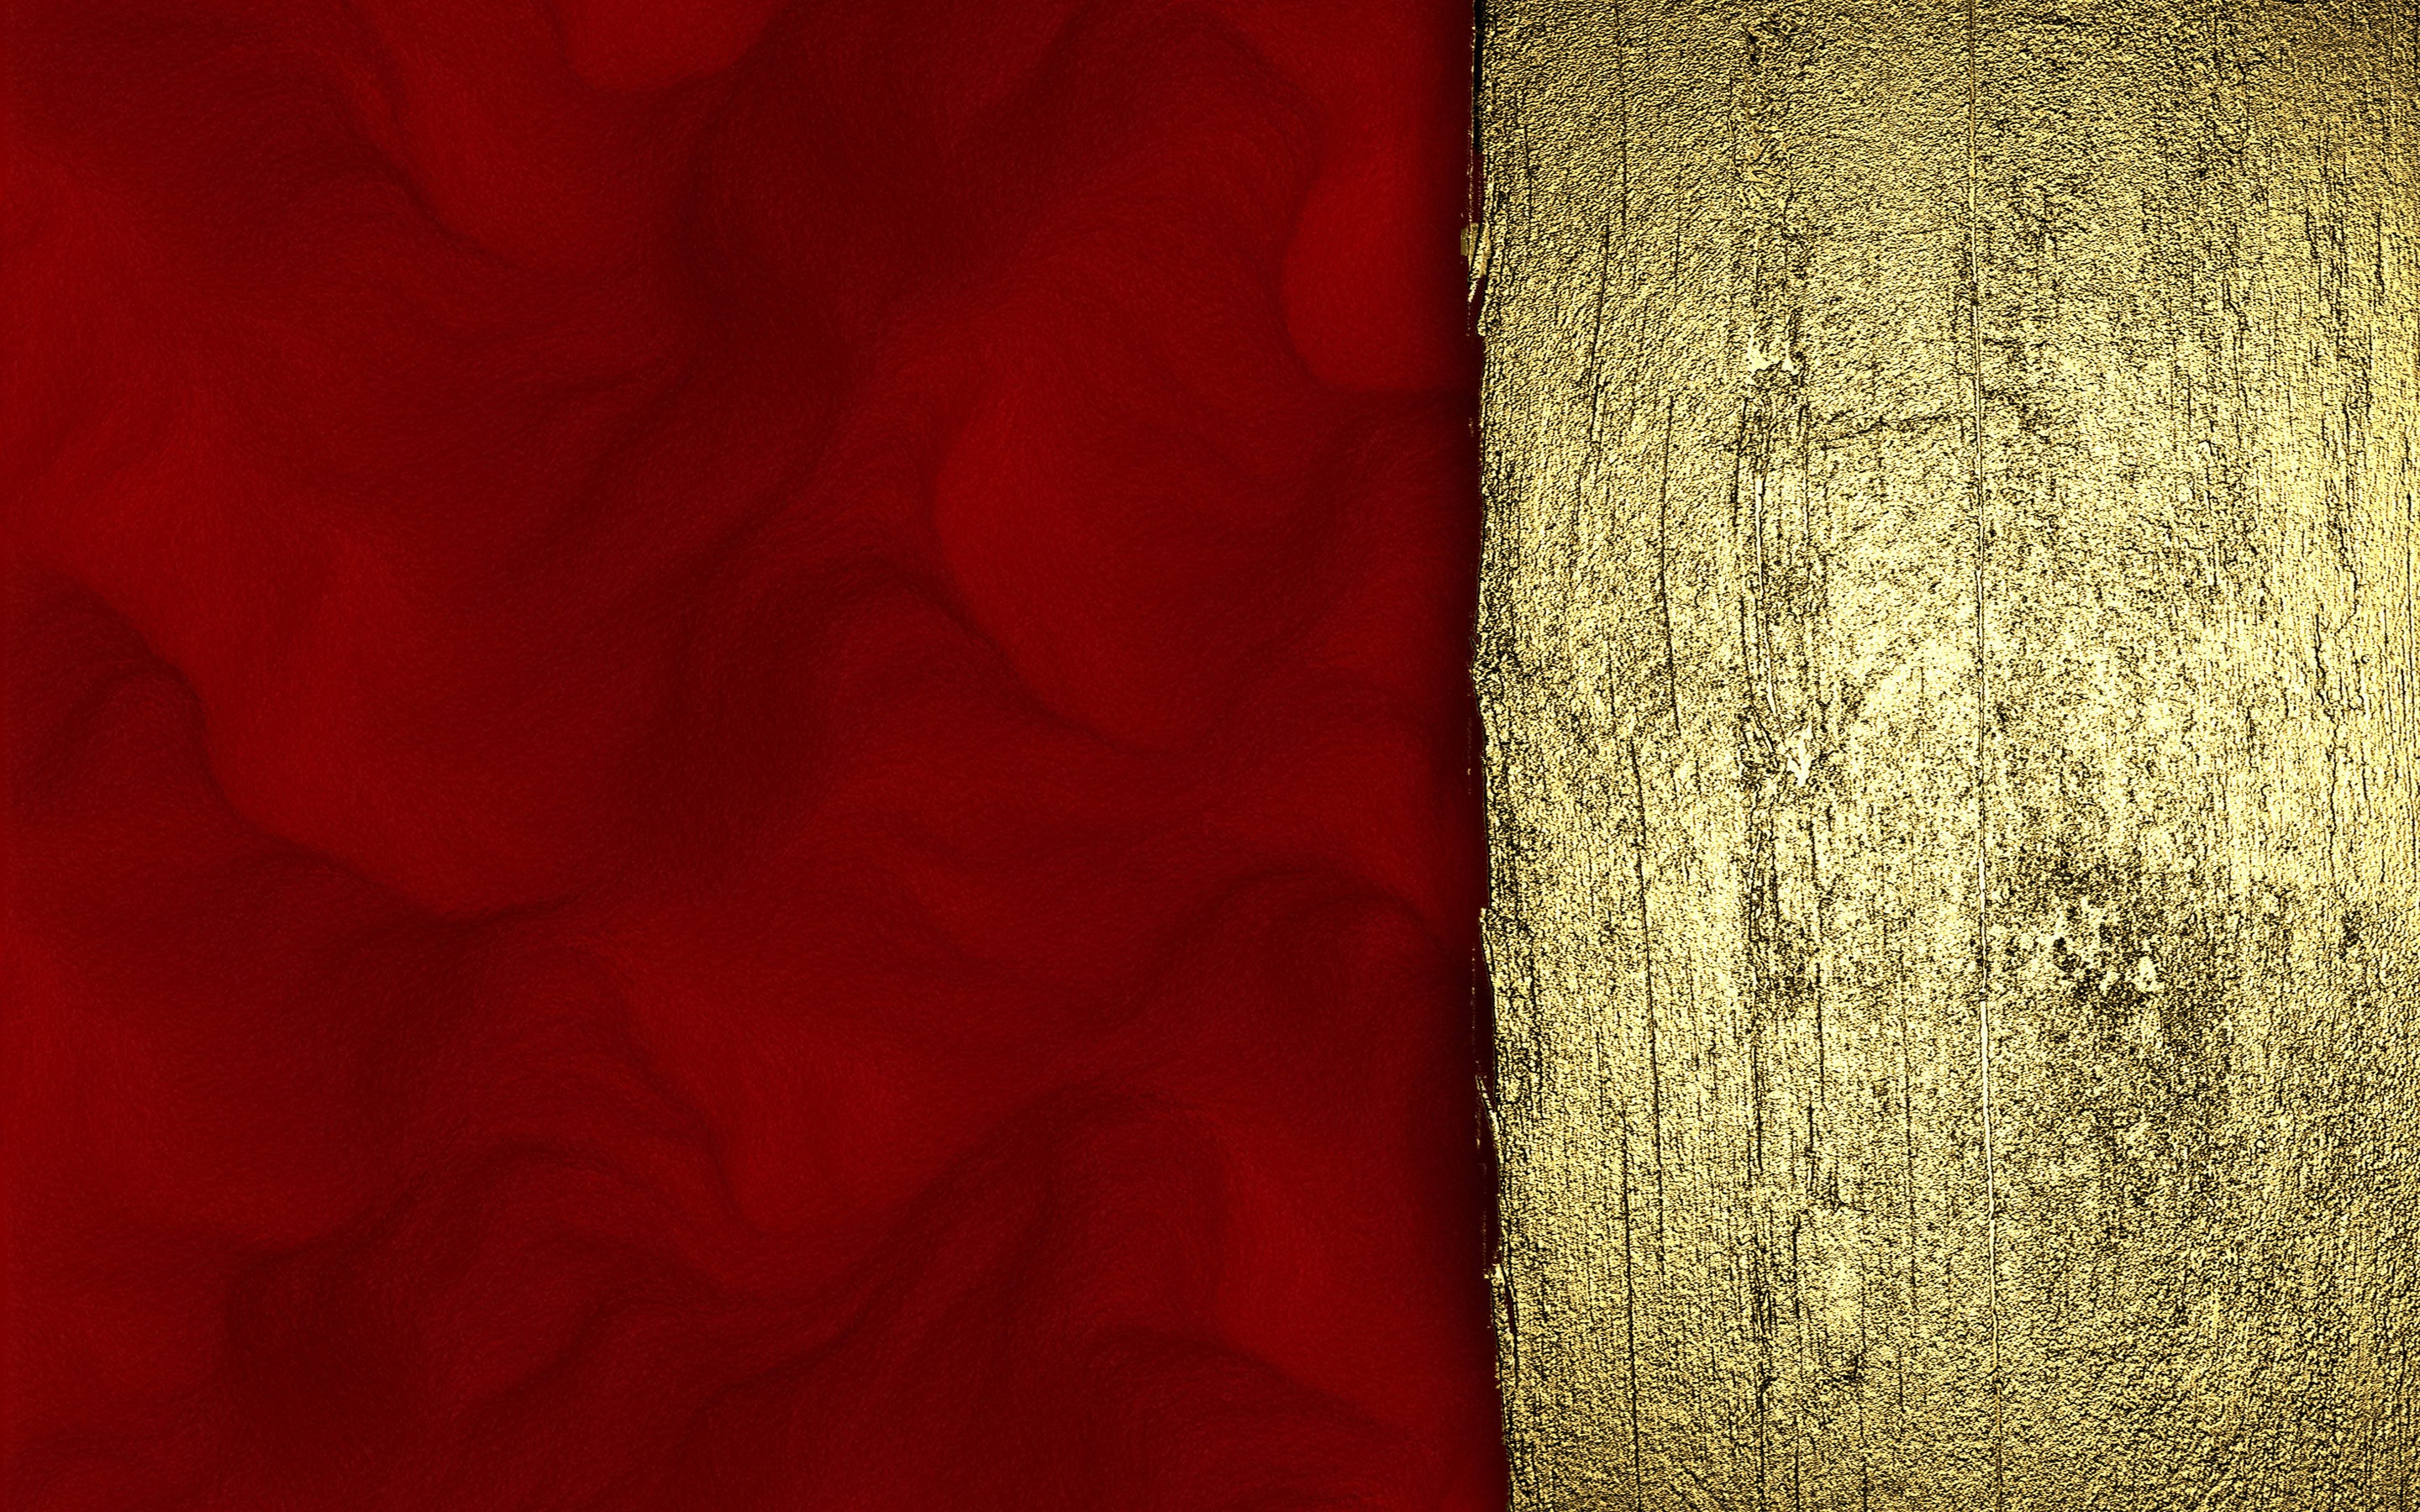 Red And Gold Background ·① Download Free Awesome. Latest Kitchen Design Trends. Kitchen And Bath Design Center San Jose. Cnc Kitchen Design. Kitchen Design For Narrow Spaces. Kitchen Cabinet Design Pictures. Kitchen Design Companies. Camp Kitchen Designs. Small Kitchen Design Ideas 2014